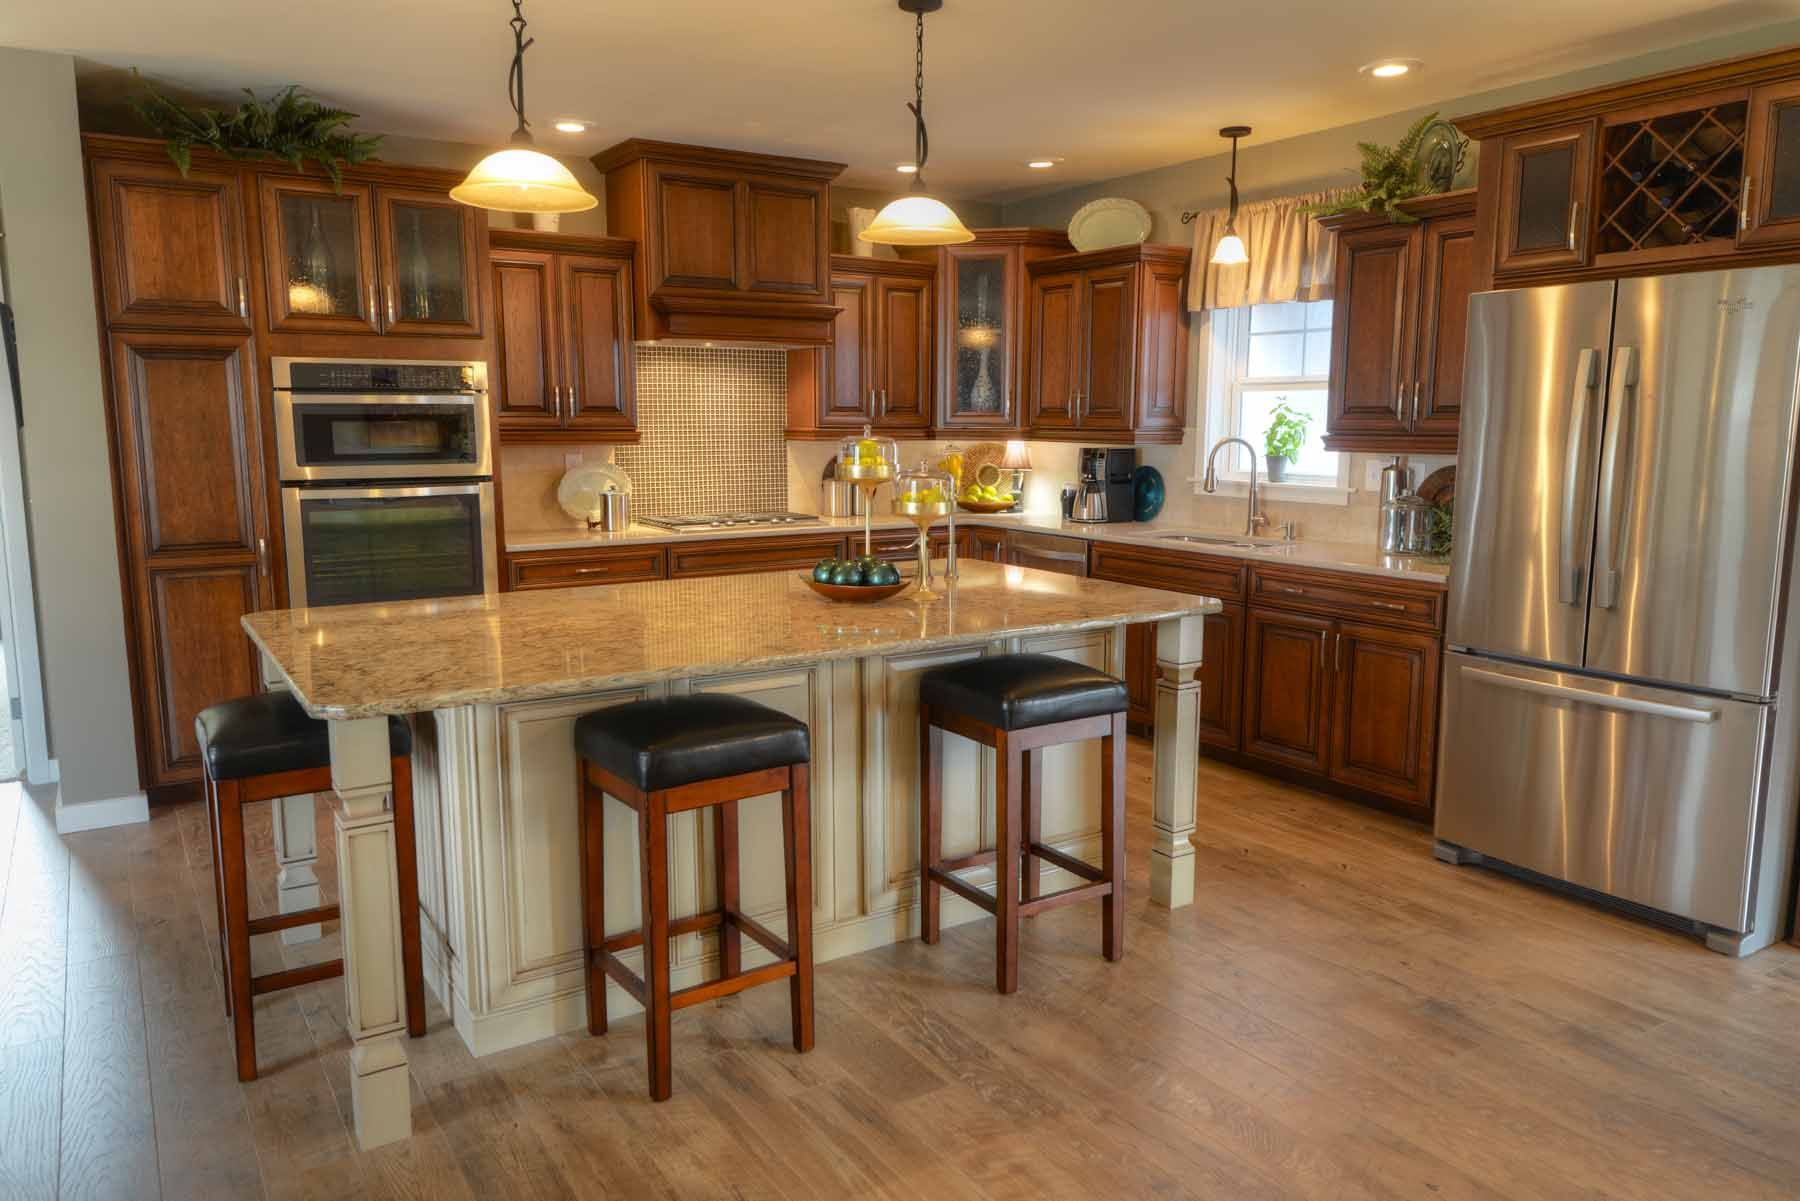 Kitchens Legacy Crafted Cabinets Kitchen Modular Log Home Kitchens Home Kitchens